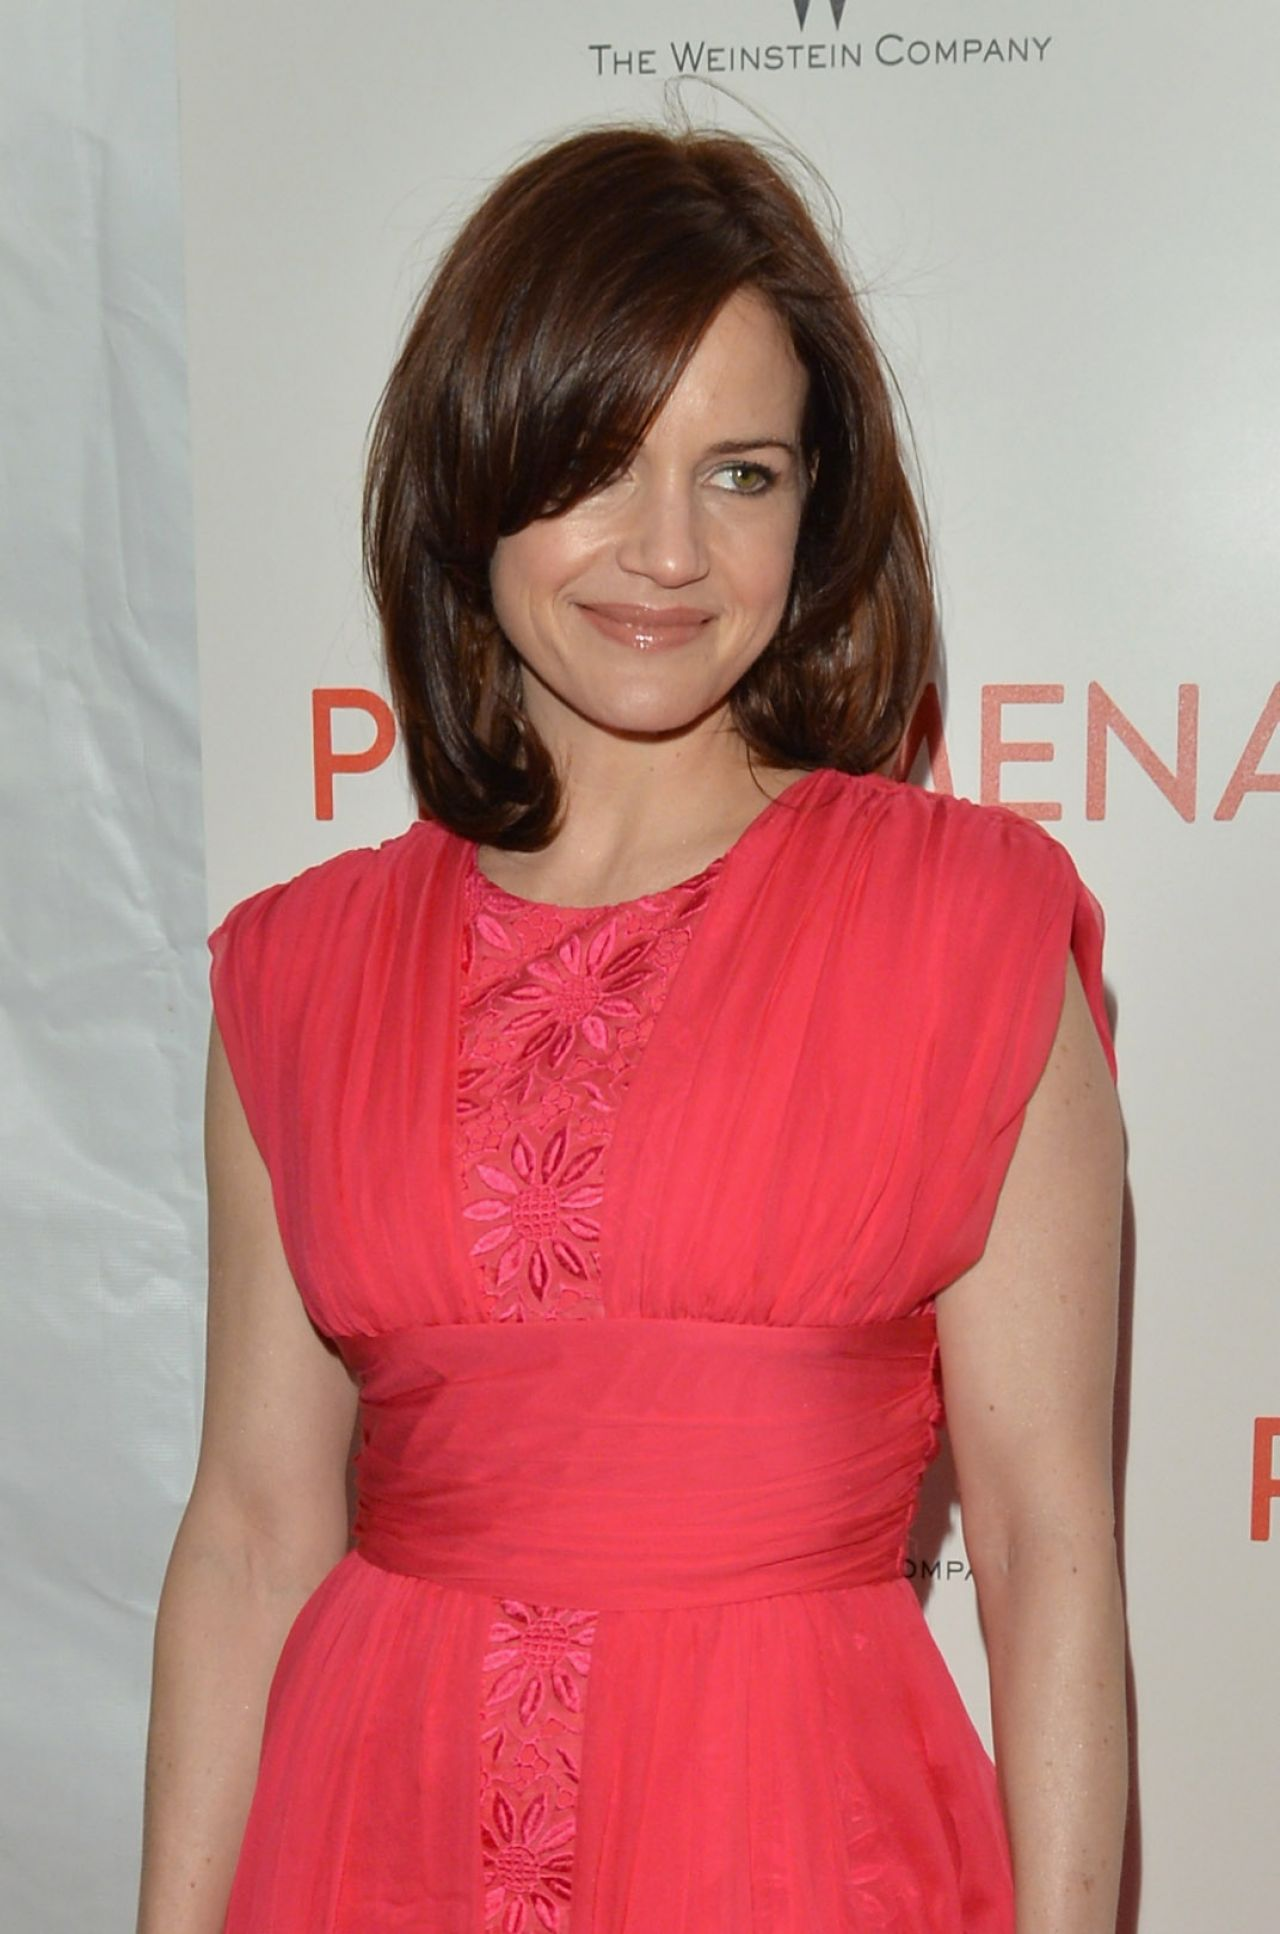 Carla Gugino - Premiere of PHILOMENA in New York